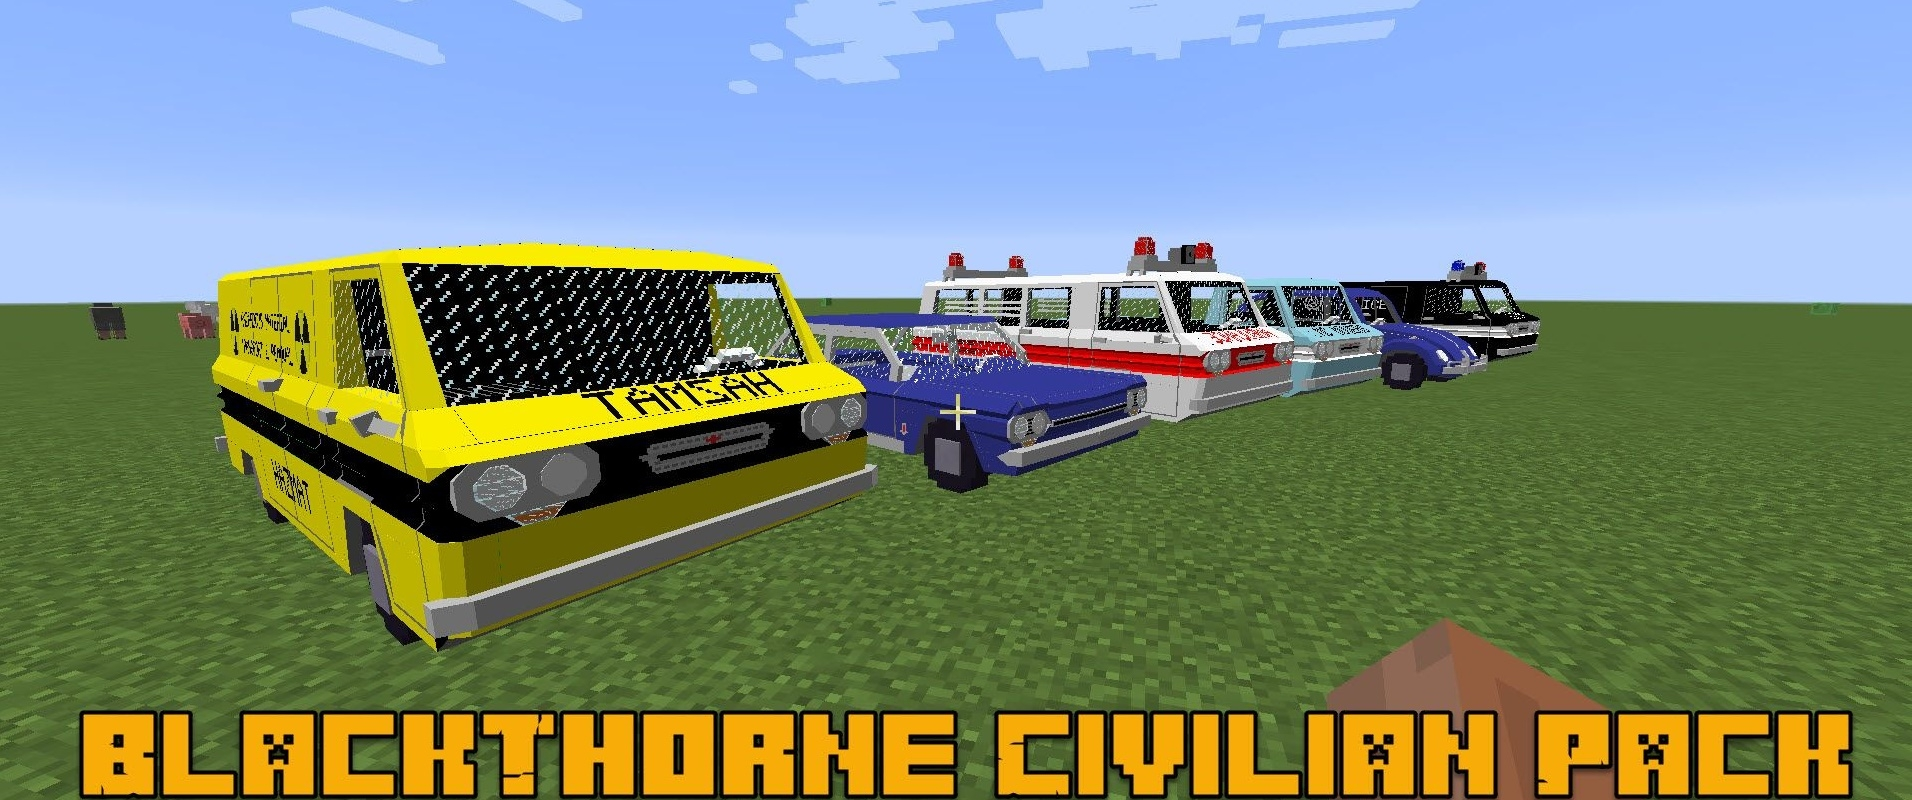 Мод BlackThorne Civilian Pack 1.12